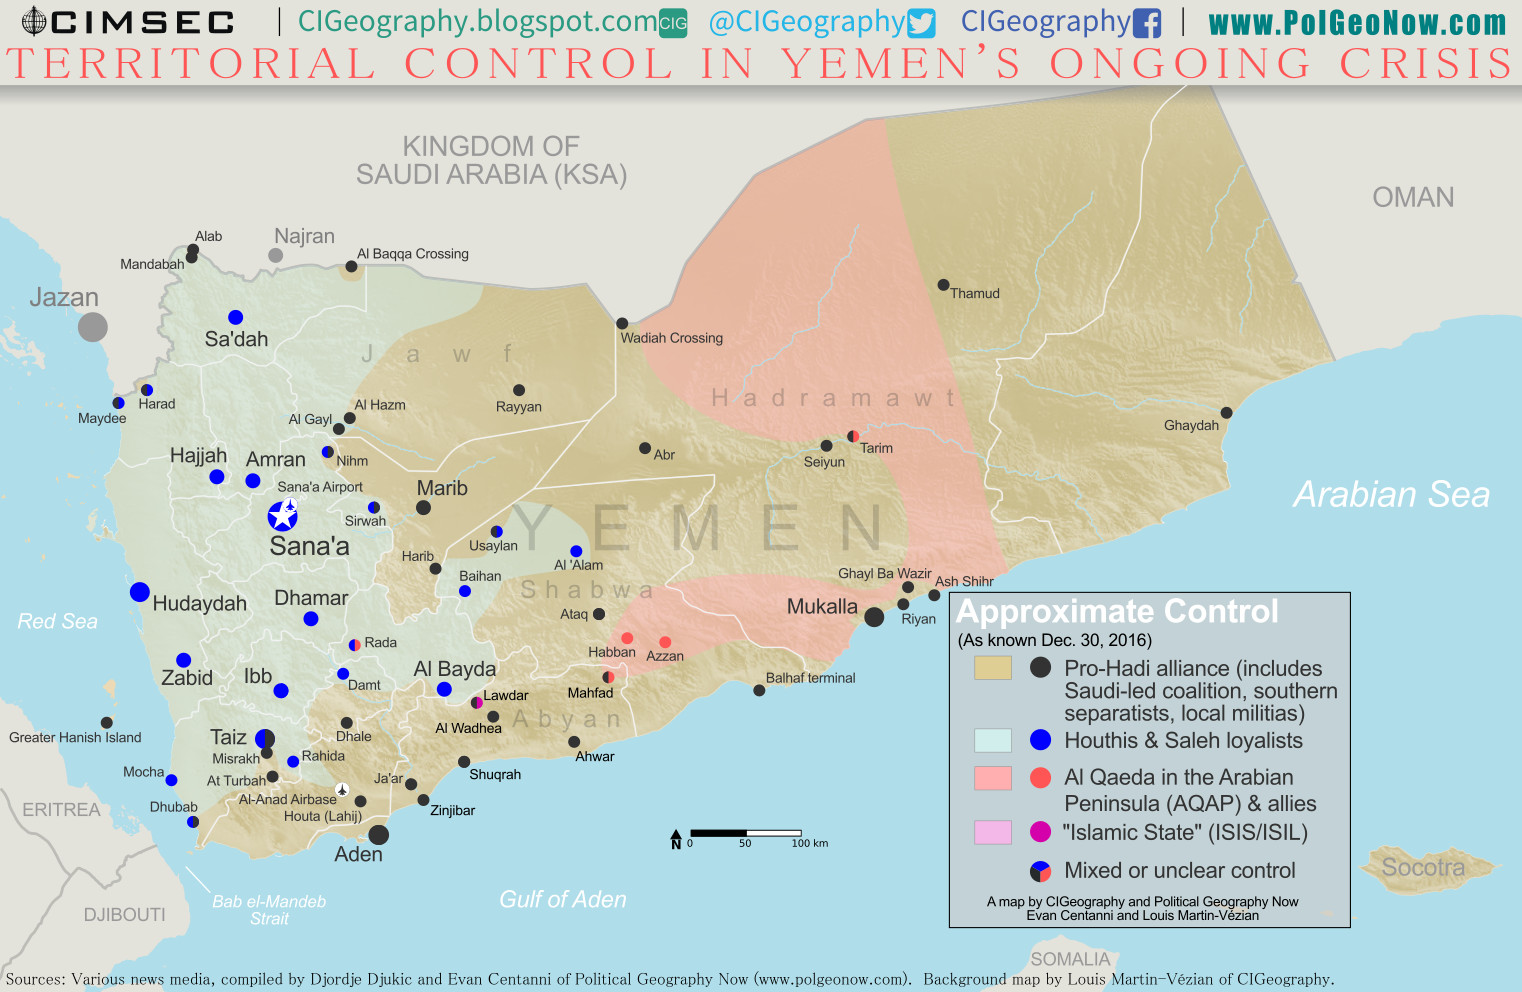 Map of what is happening in Yemen as of December 30, 2016, including territorial control for the Houthi rebels and former president Saleh's forces, president-in-exile Hadi and his allies in the Saudi-led coalition and Southern Movement, Al Qaeda in the Arabian Peninsula (AQAP), and the so-called Islamic State (ISIS/ISIL). Includes recent locations of fighting, including Al Gail, Sirwah, Usaylan, and areas long the Yemen border with Saudi Arabia.